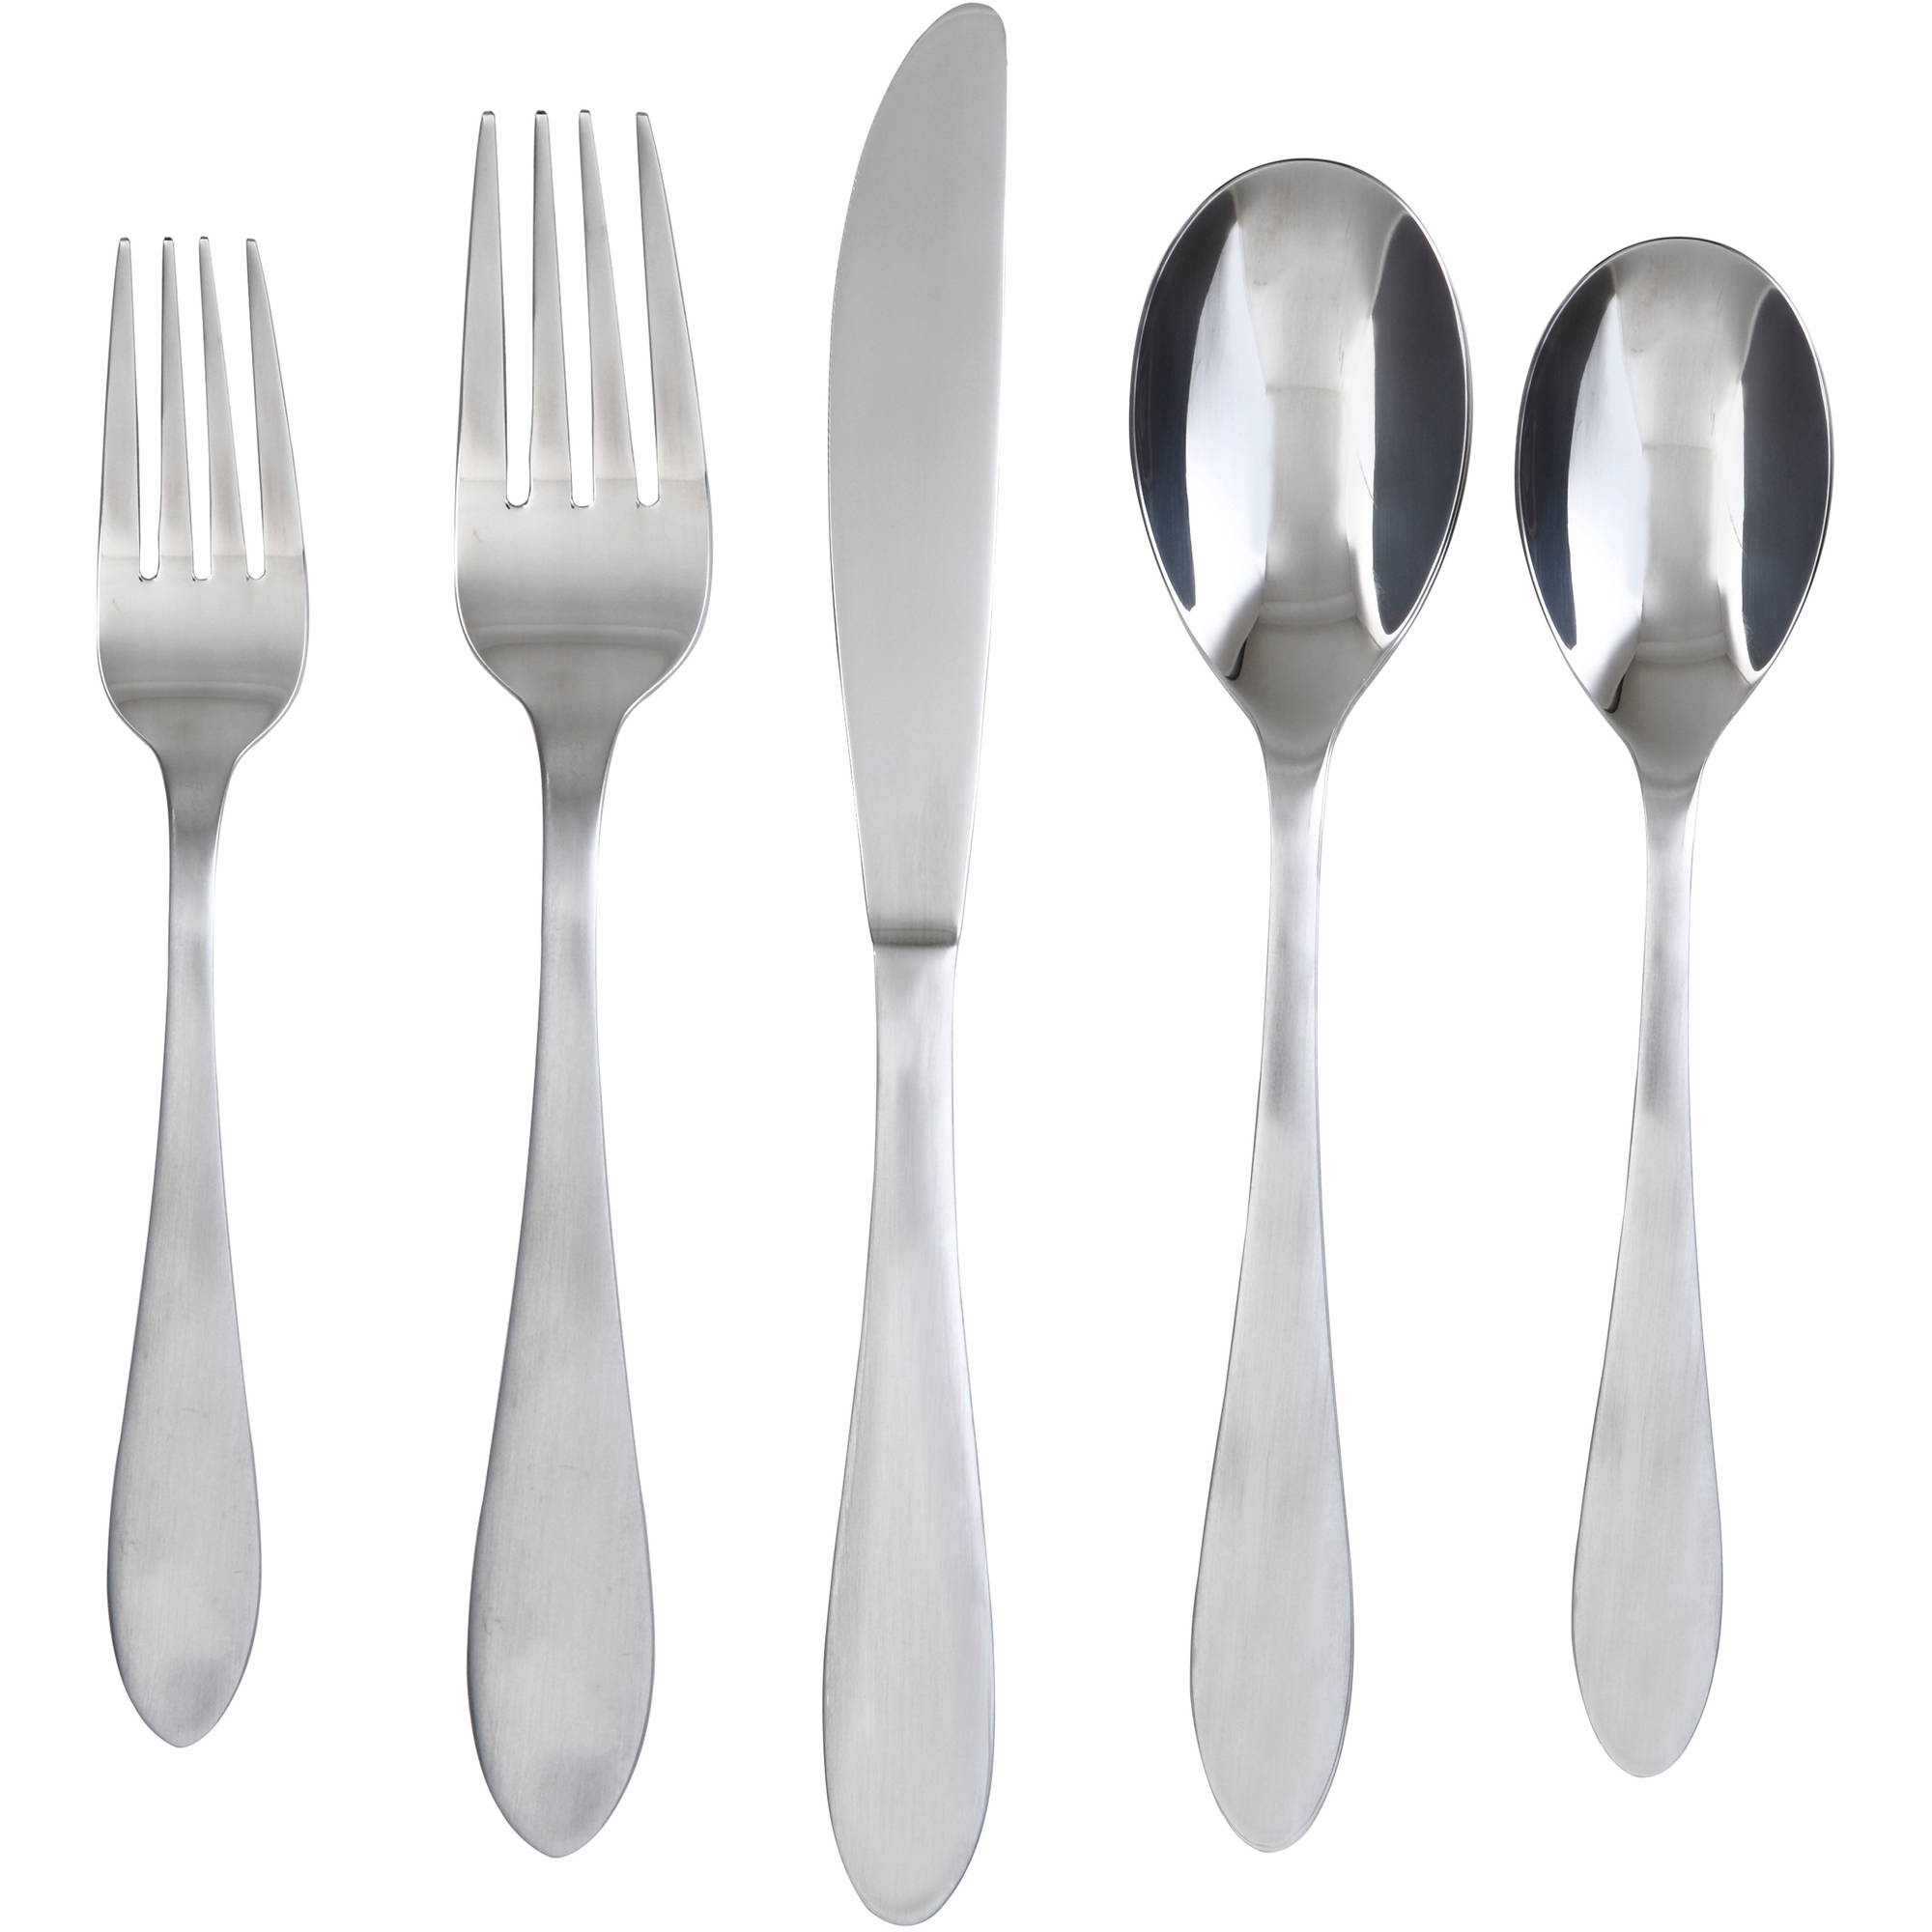 Admirable Cambridge Flatware 5 Pcs Silverware Flatware For Kitchen Or Dining Ideas